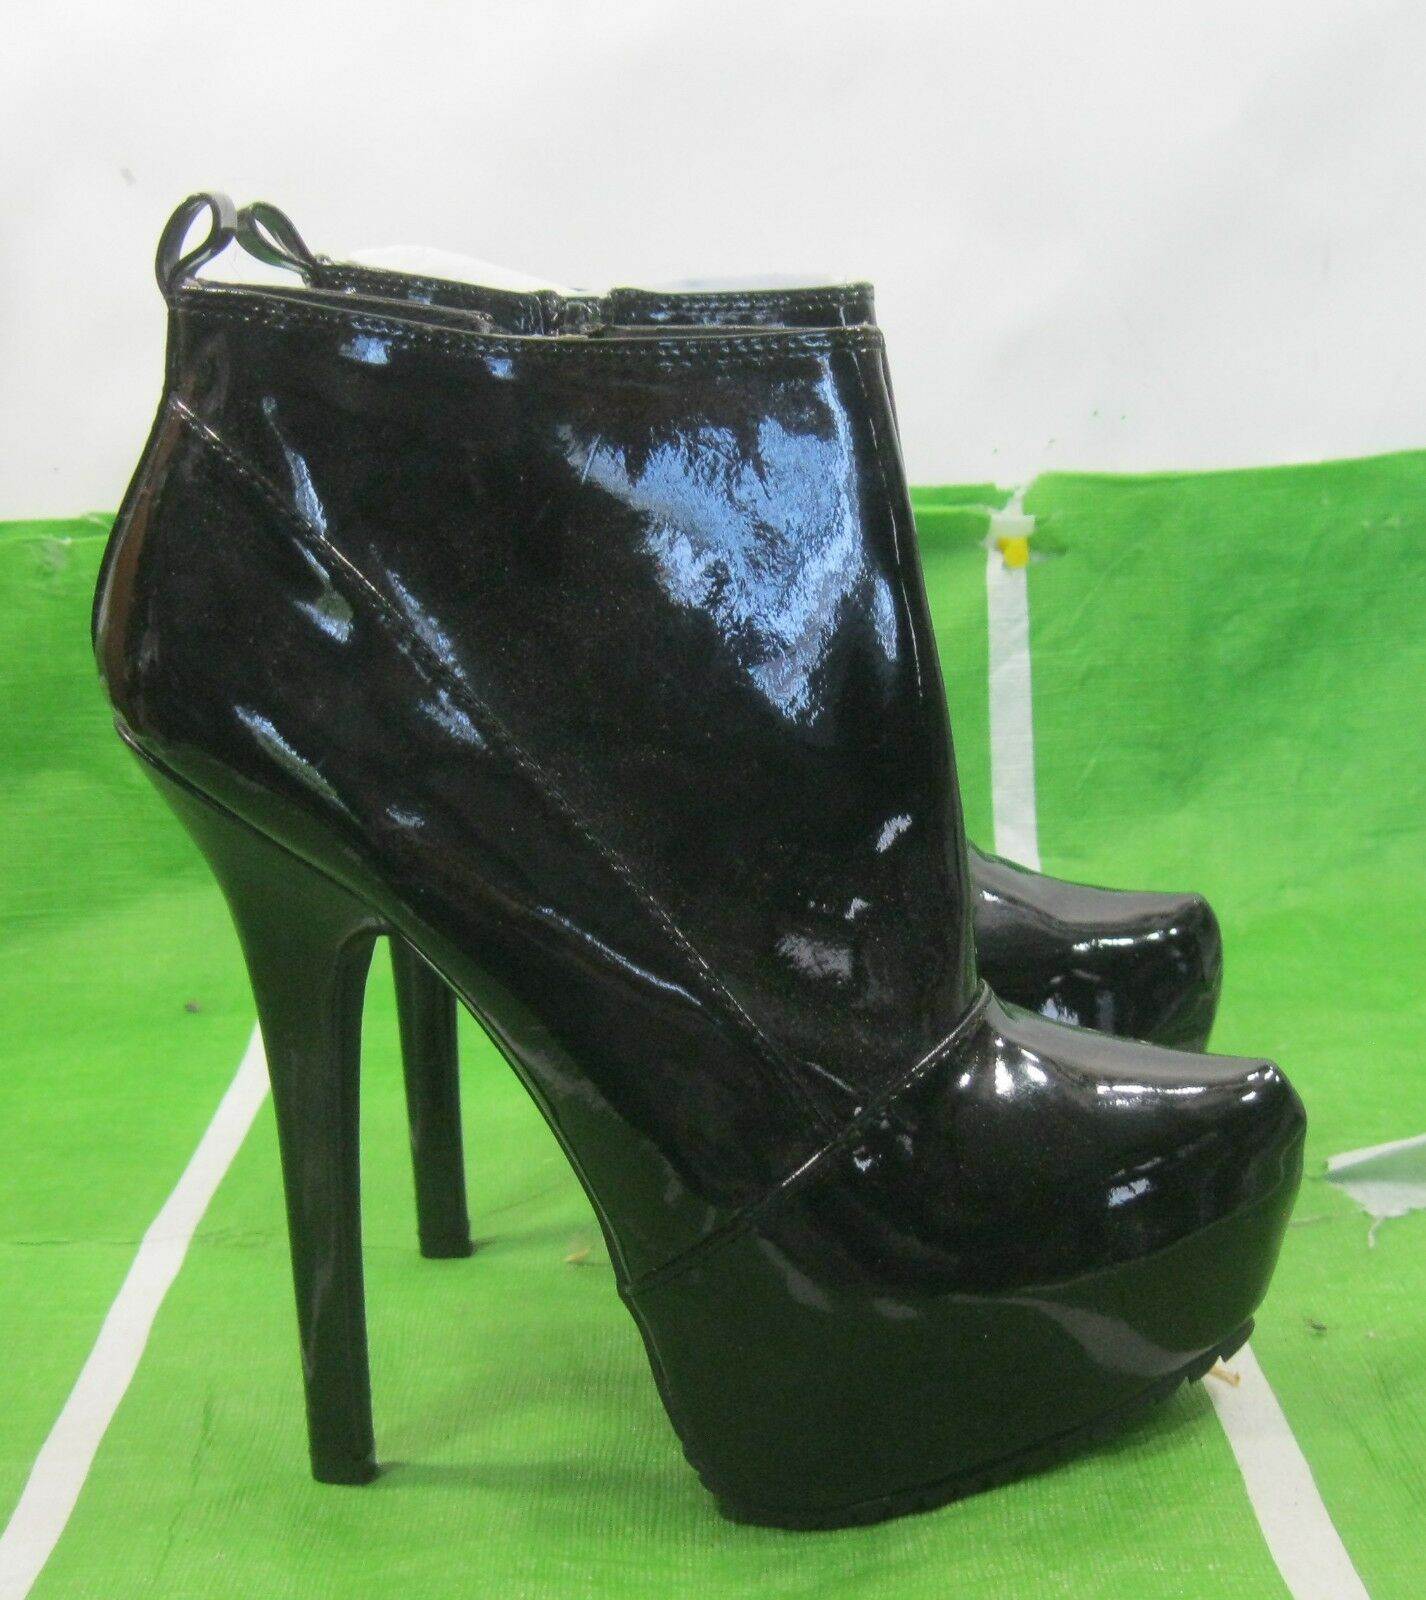 New Black 6 High Stiletto Heel 2 Platform pointy Toe Sexy Ankle Boots Size  8